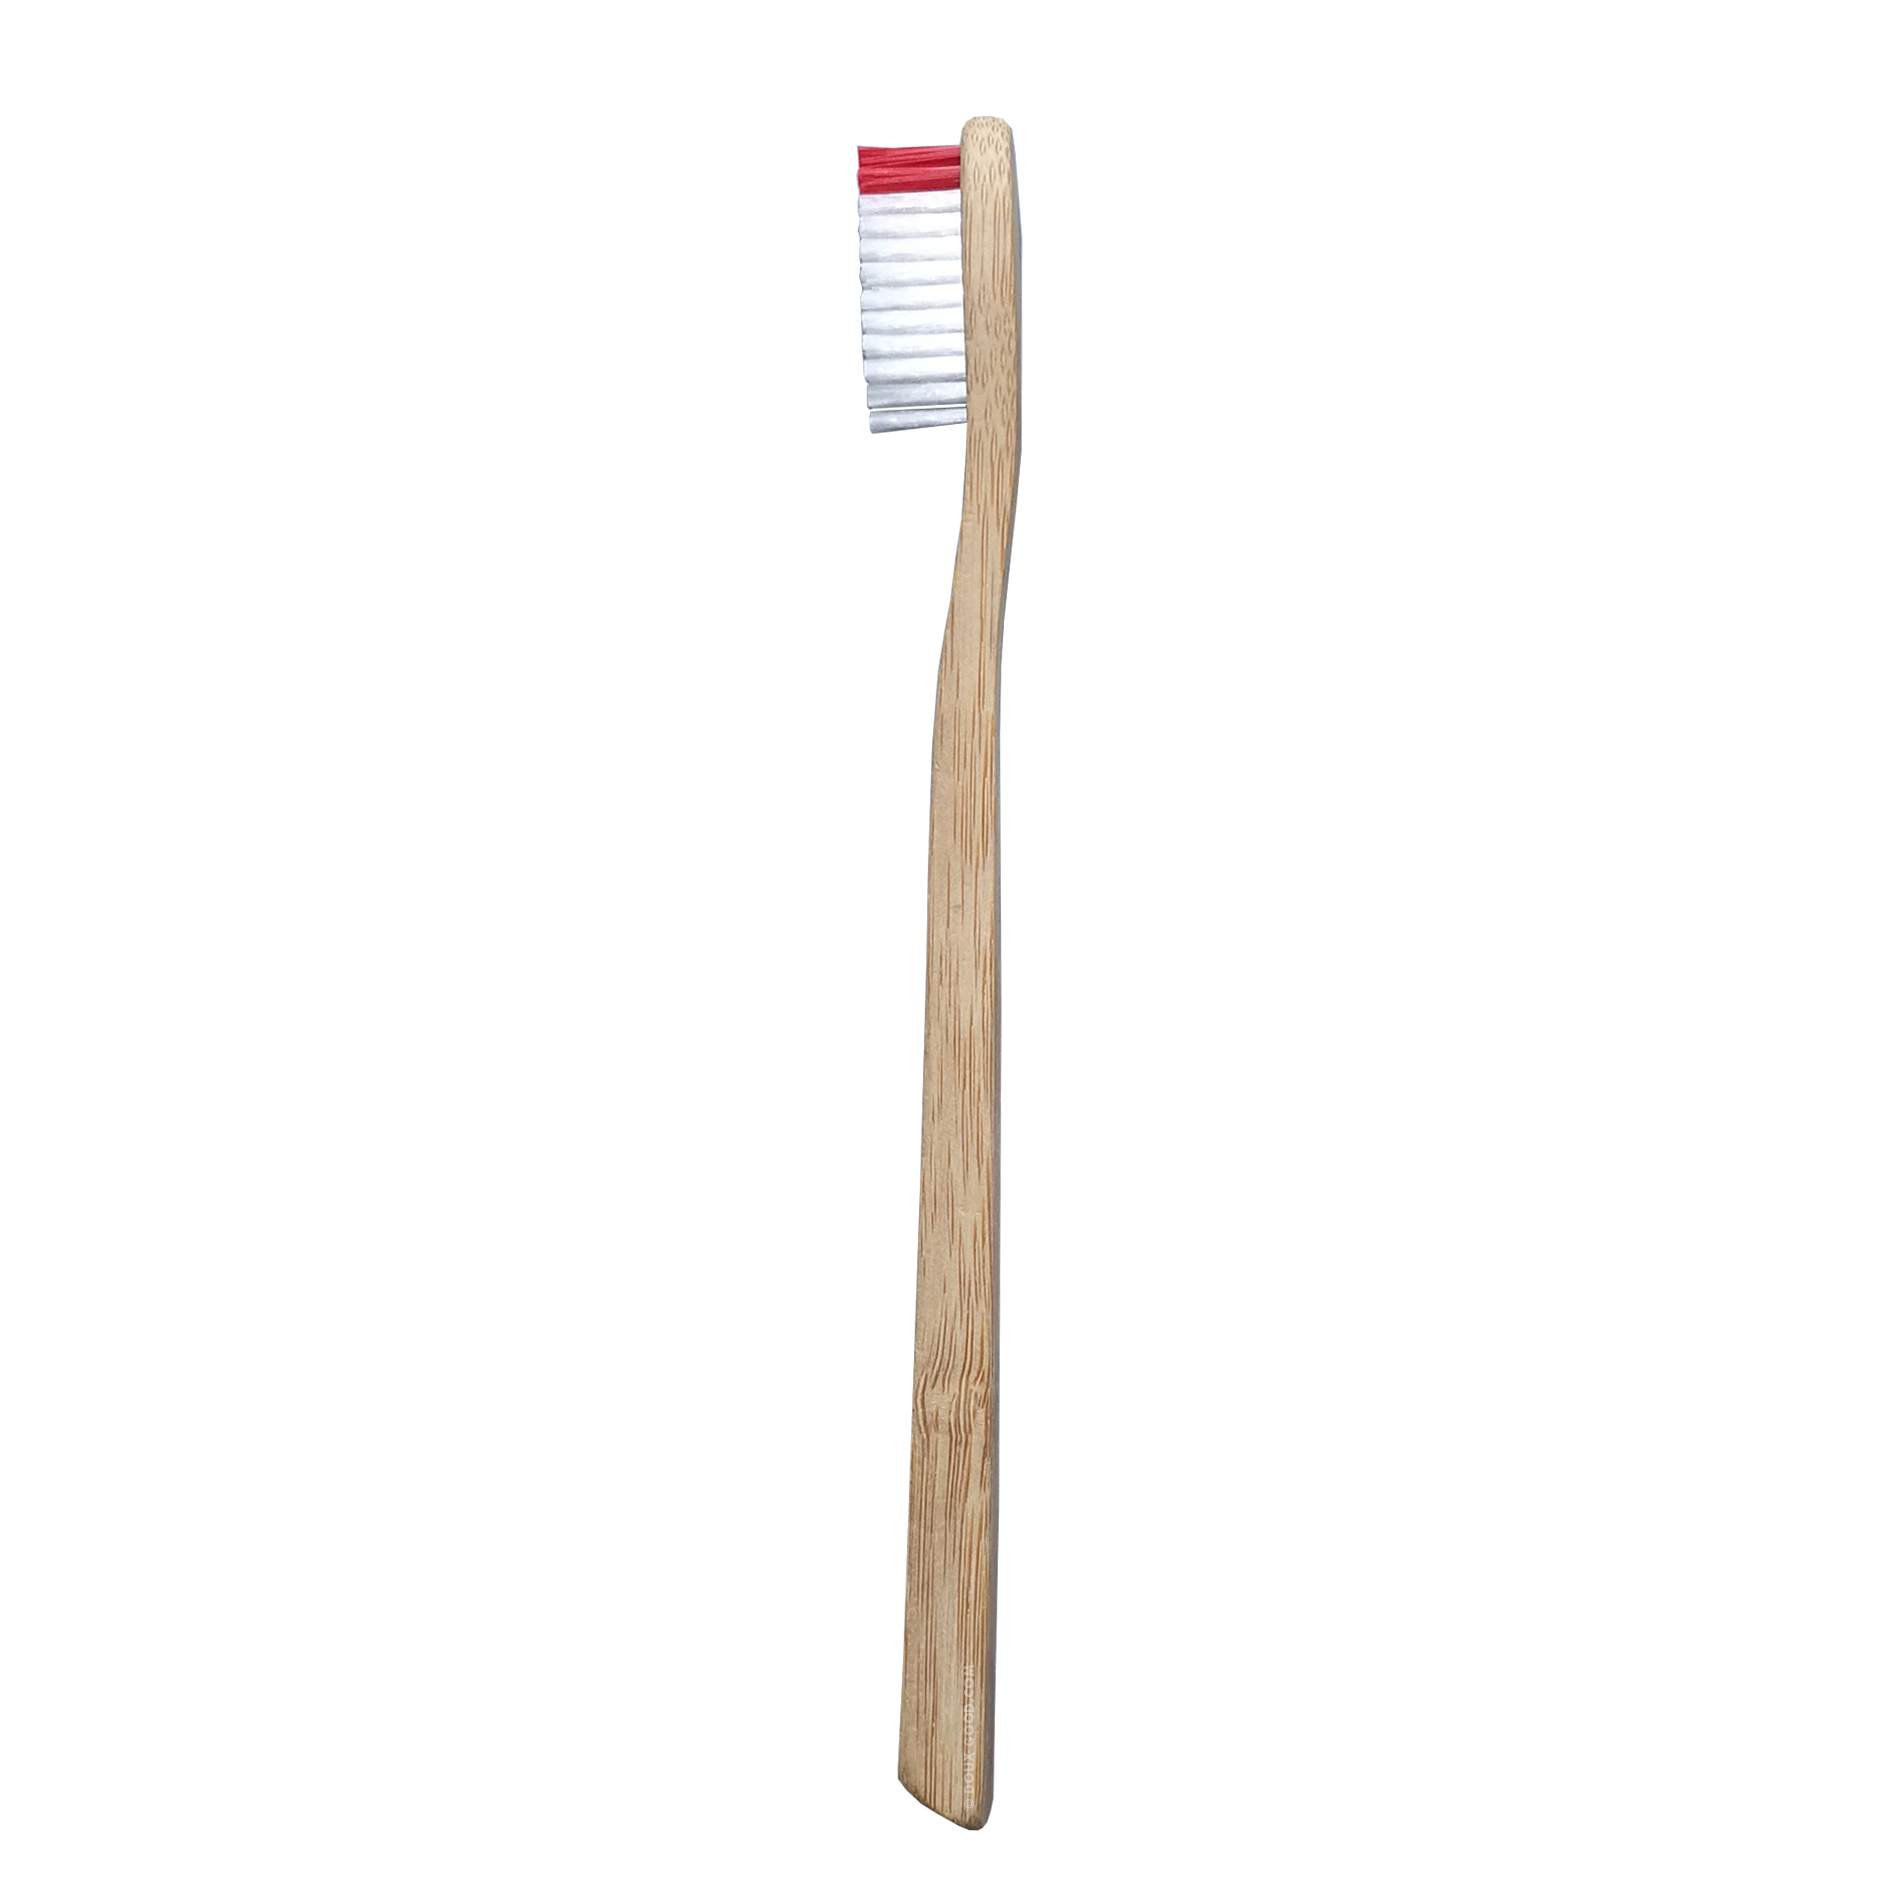 My Boo Company - brosse à dents en bambou - Adulte medium - Rouge